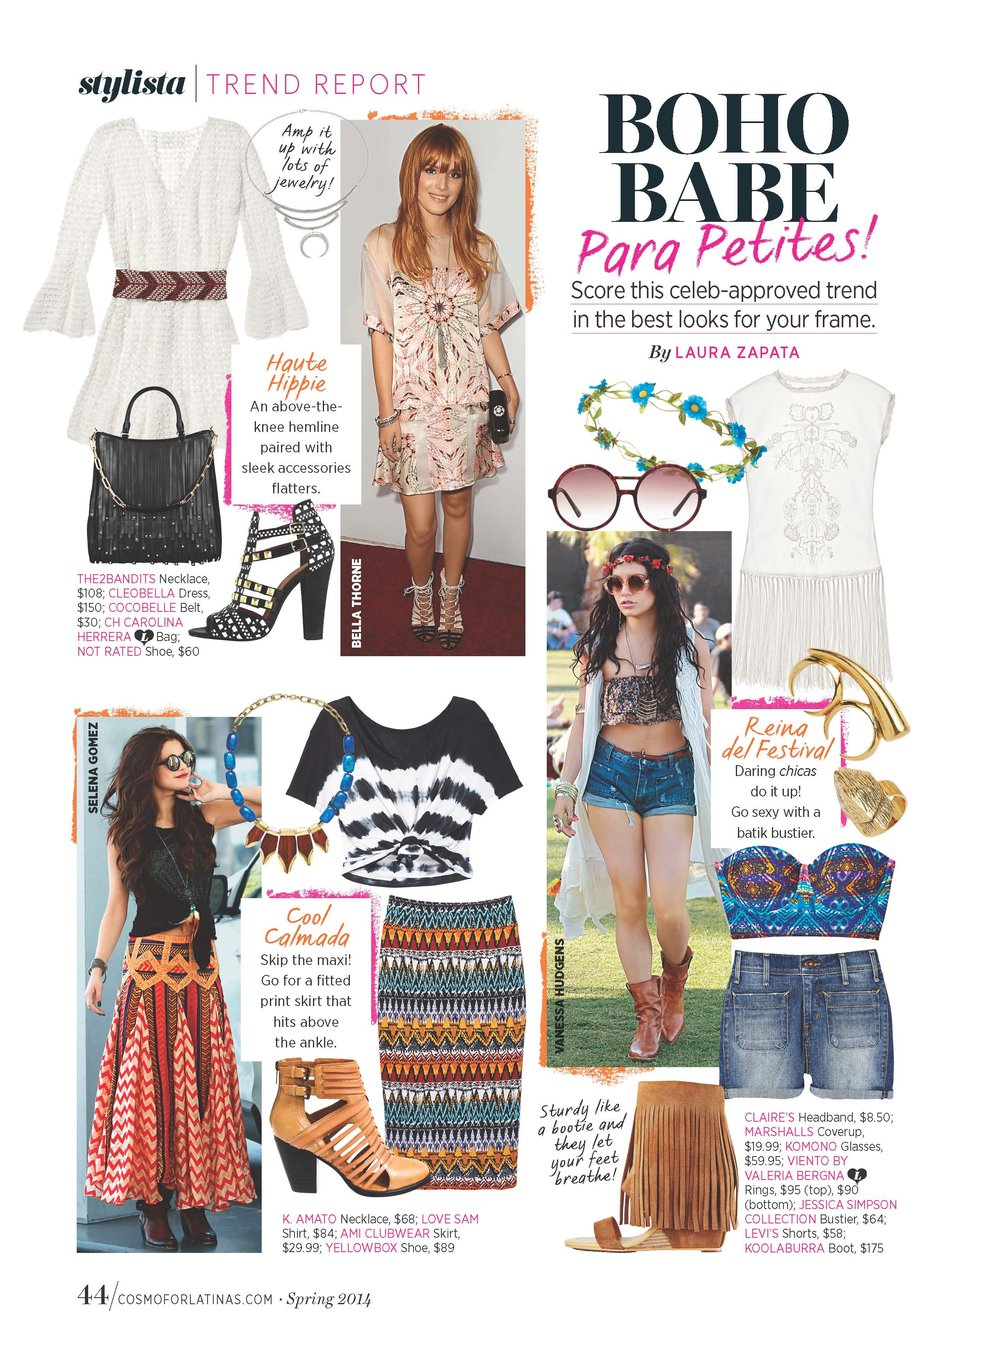 Trend Direction & Fashion Editor, FOB Trend Report -  Cosmo for Latinas.